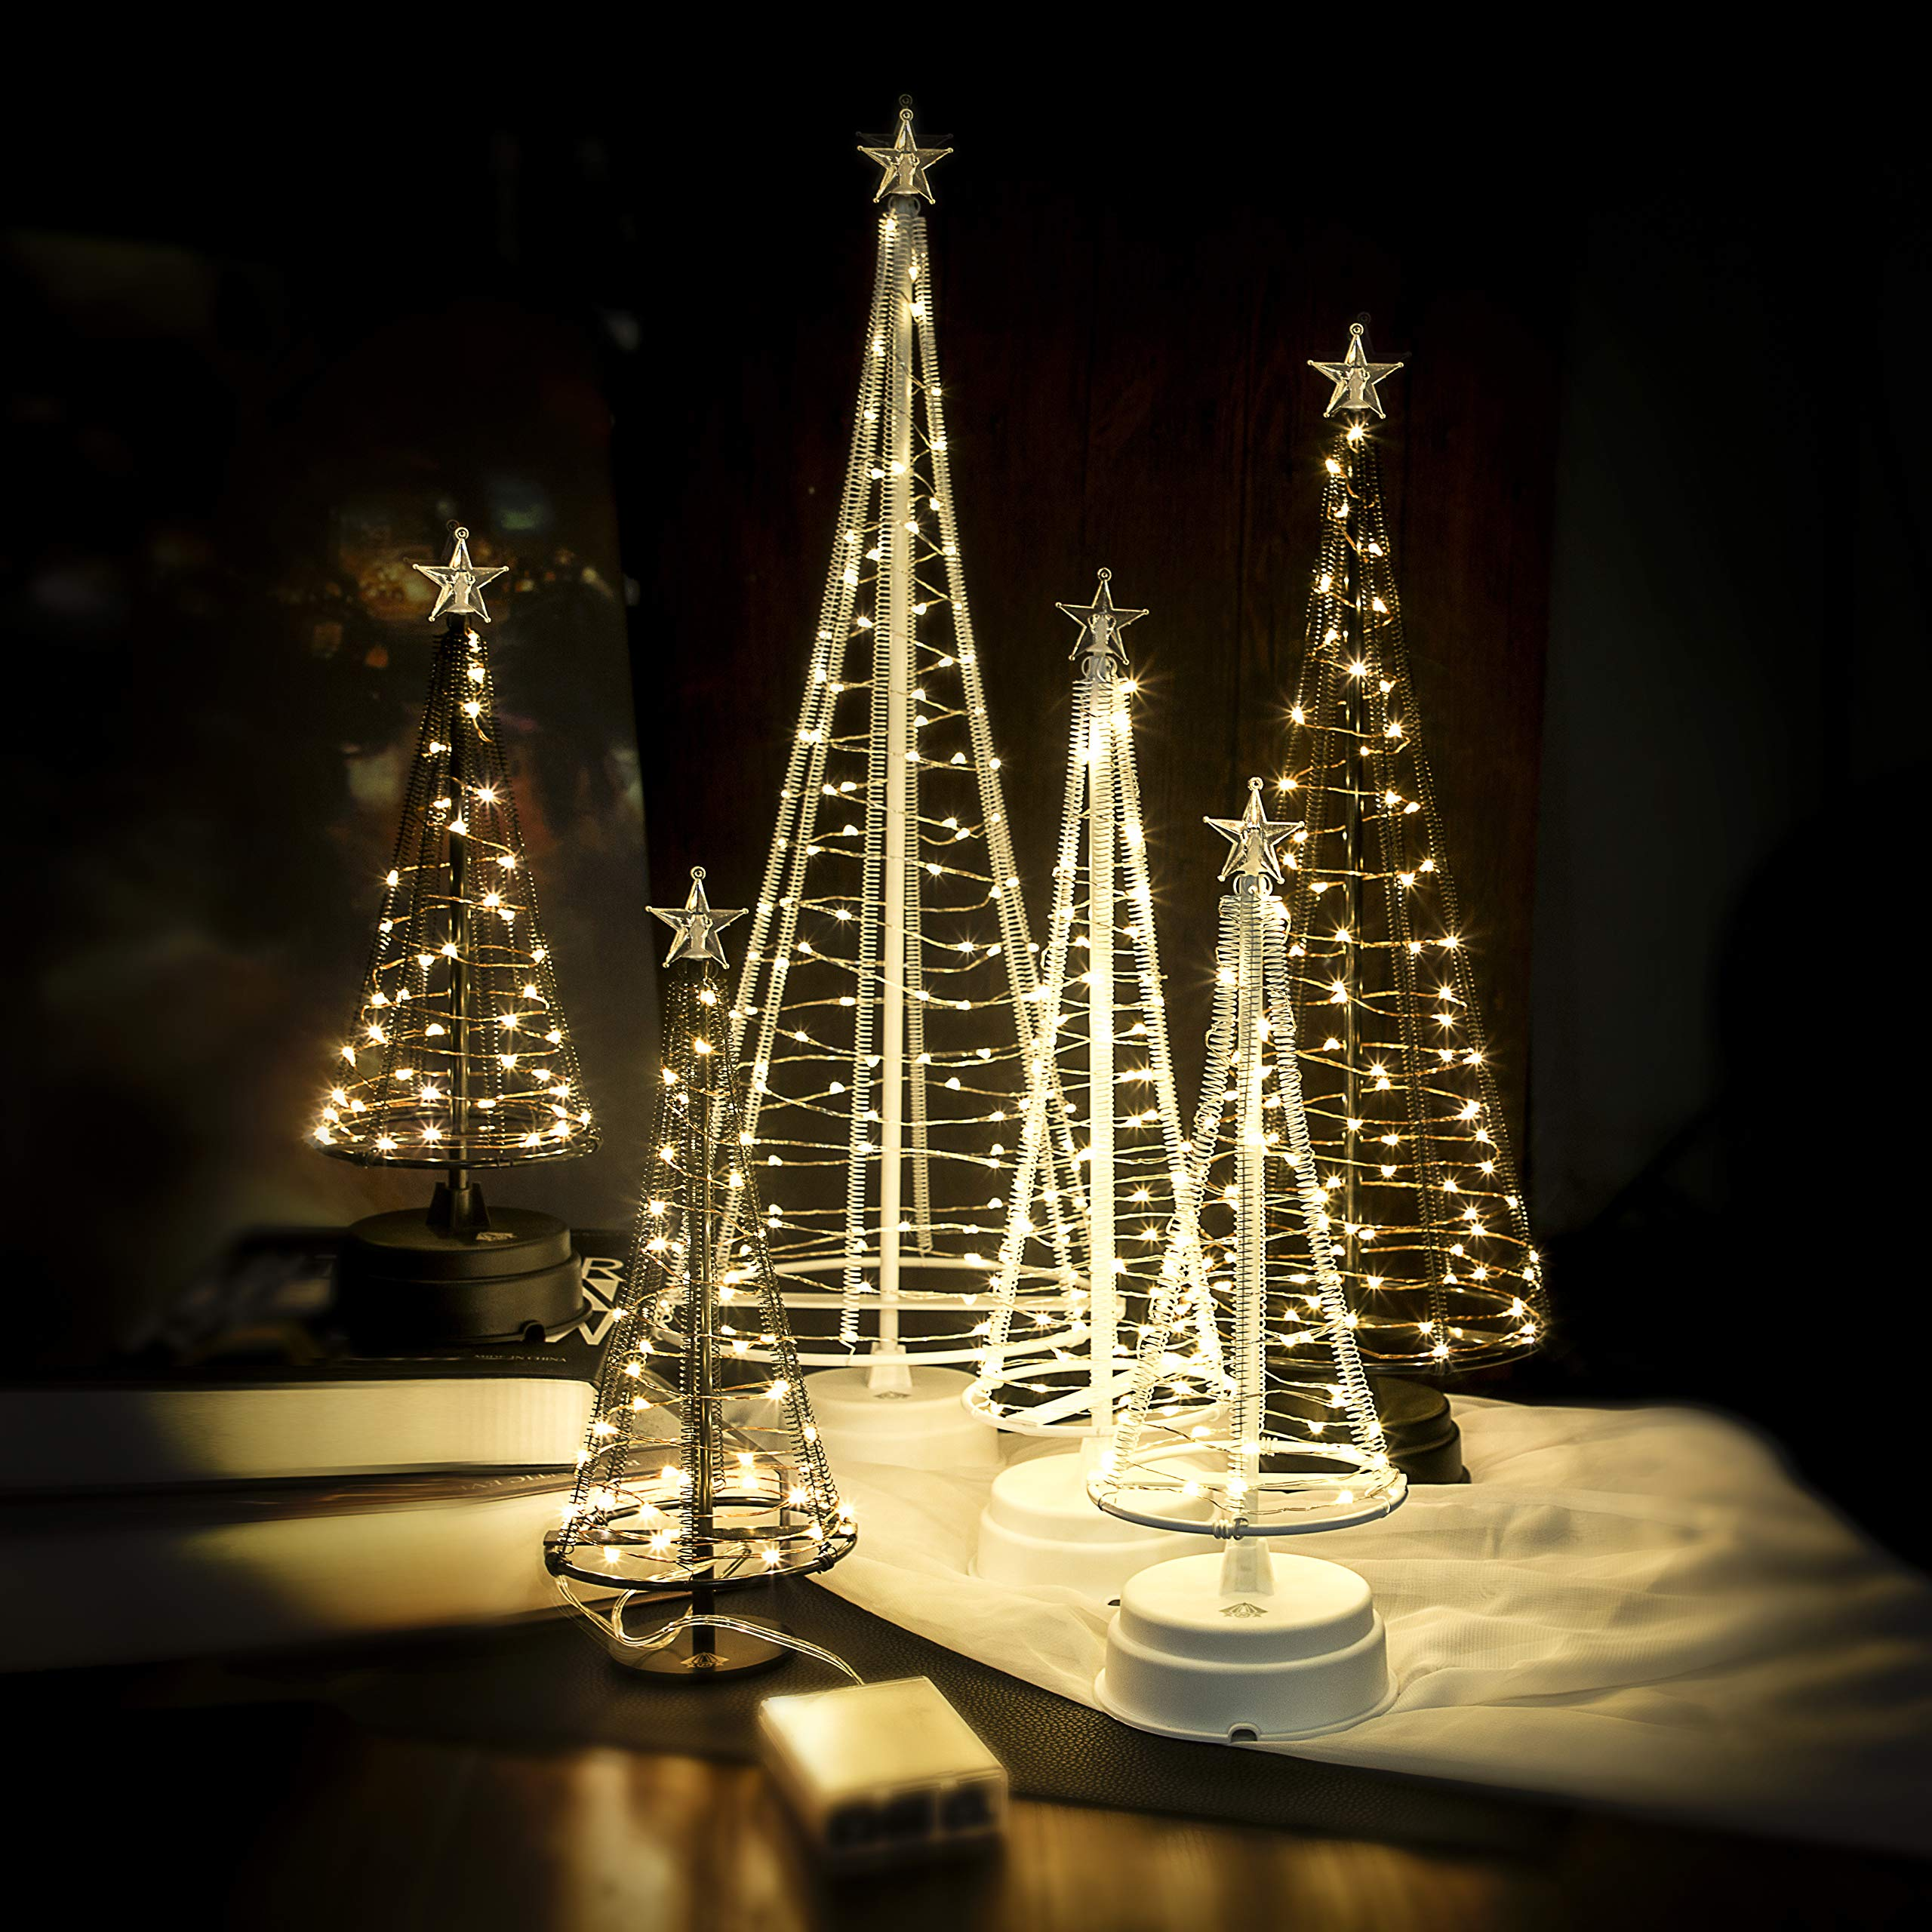 HONESTY Decorative Lights,Lovely Little Tree Lights,Trees with Flat Plate and Battery House Outside for Indoor, 40 Warm White LEDS on Copper Wire, 10.2 inch Tall,White